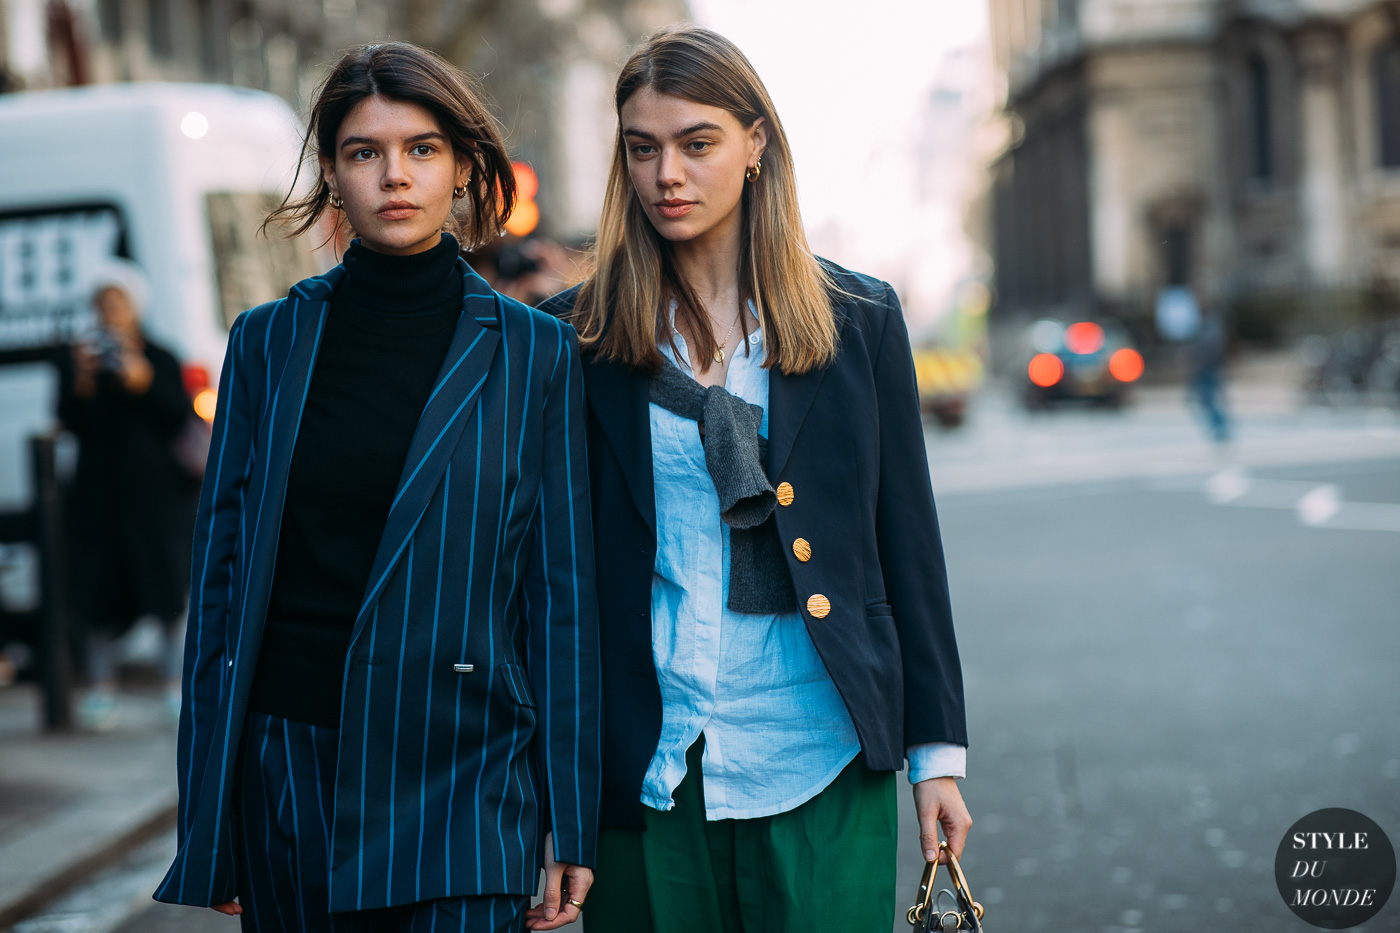 Sarah and Joanna Halpin by STYLEDUMONDE Street Style Fashion Photography FW18 20180216_48A7385